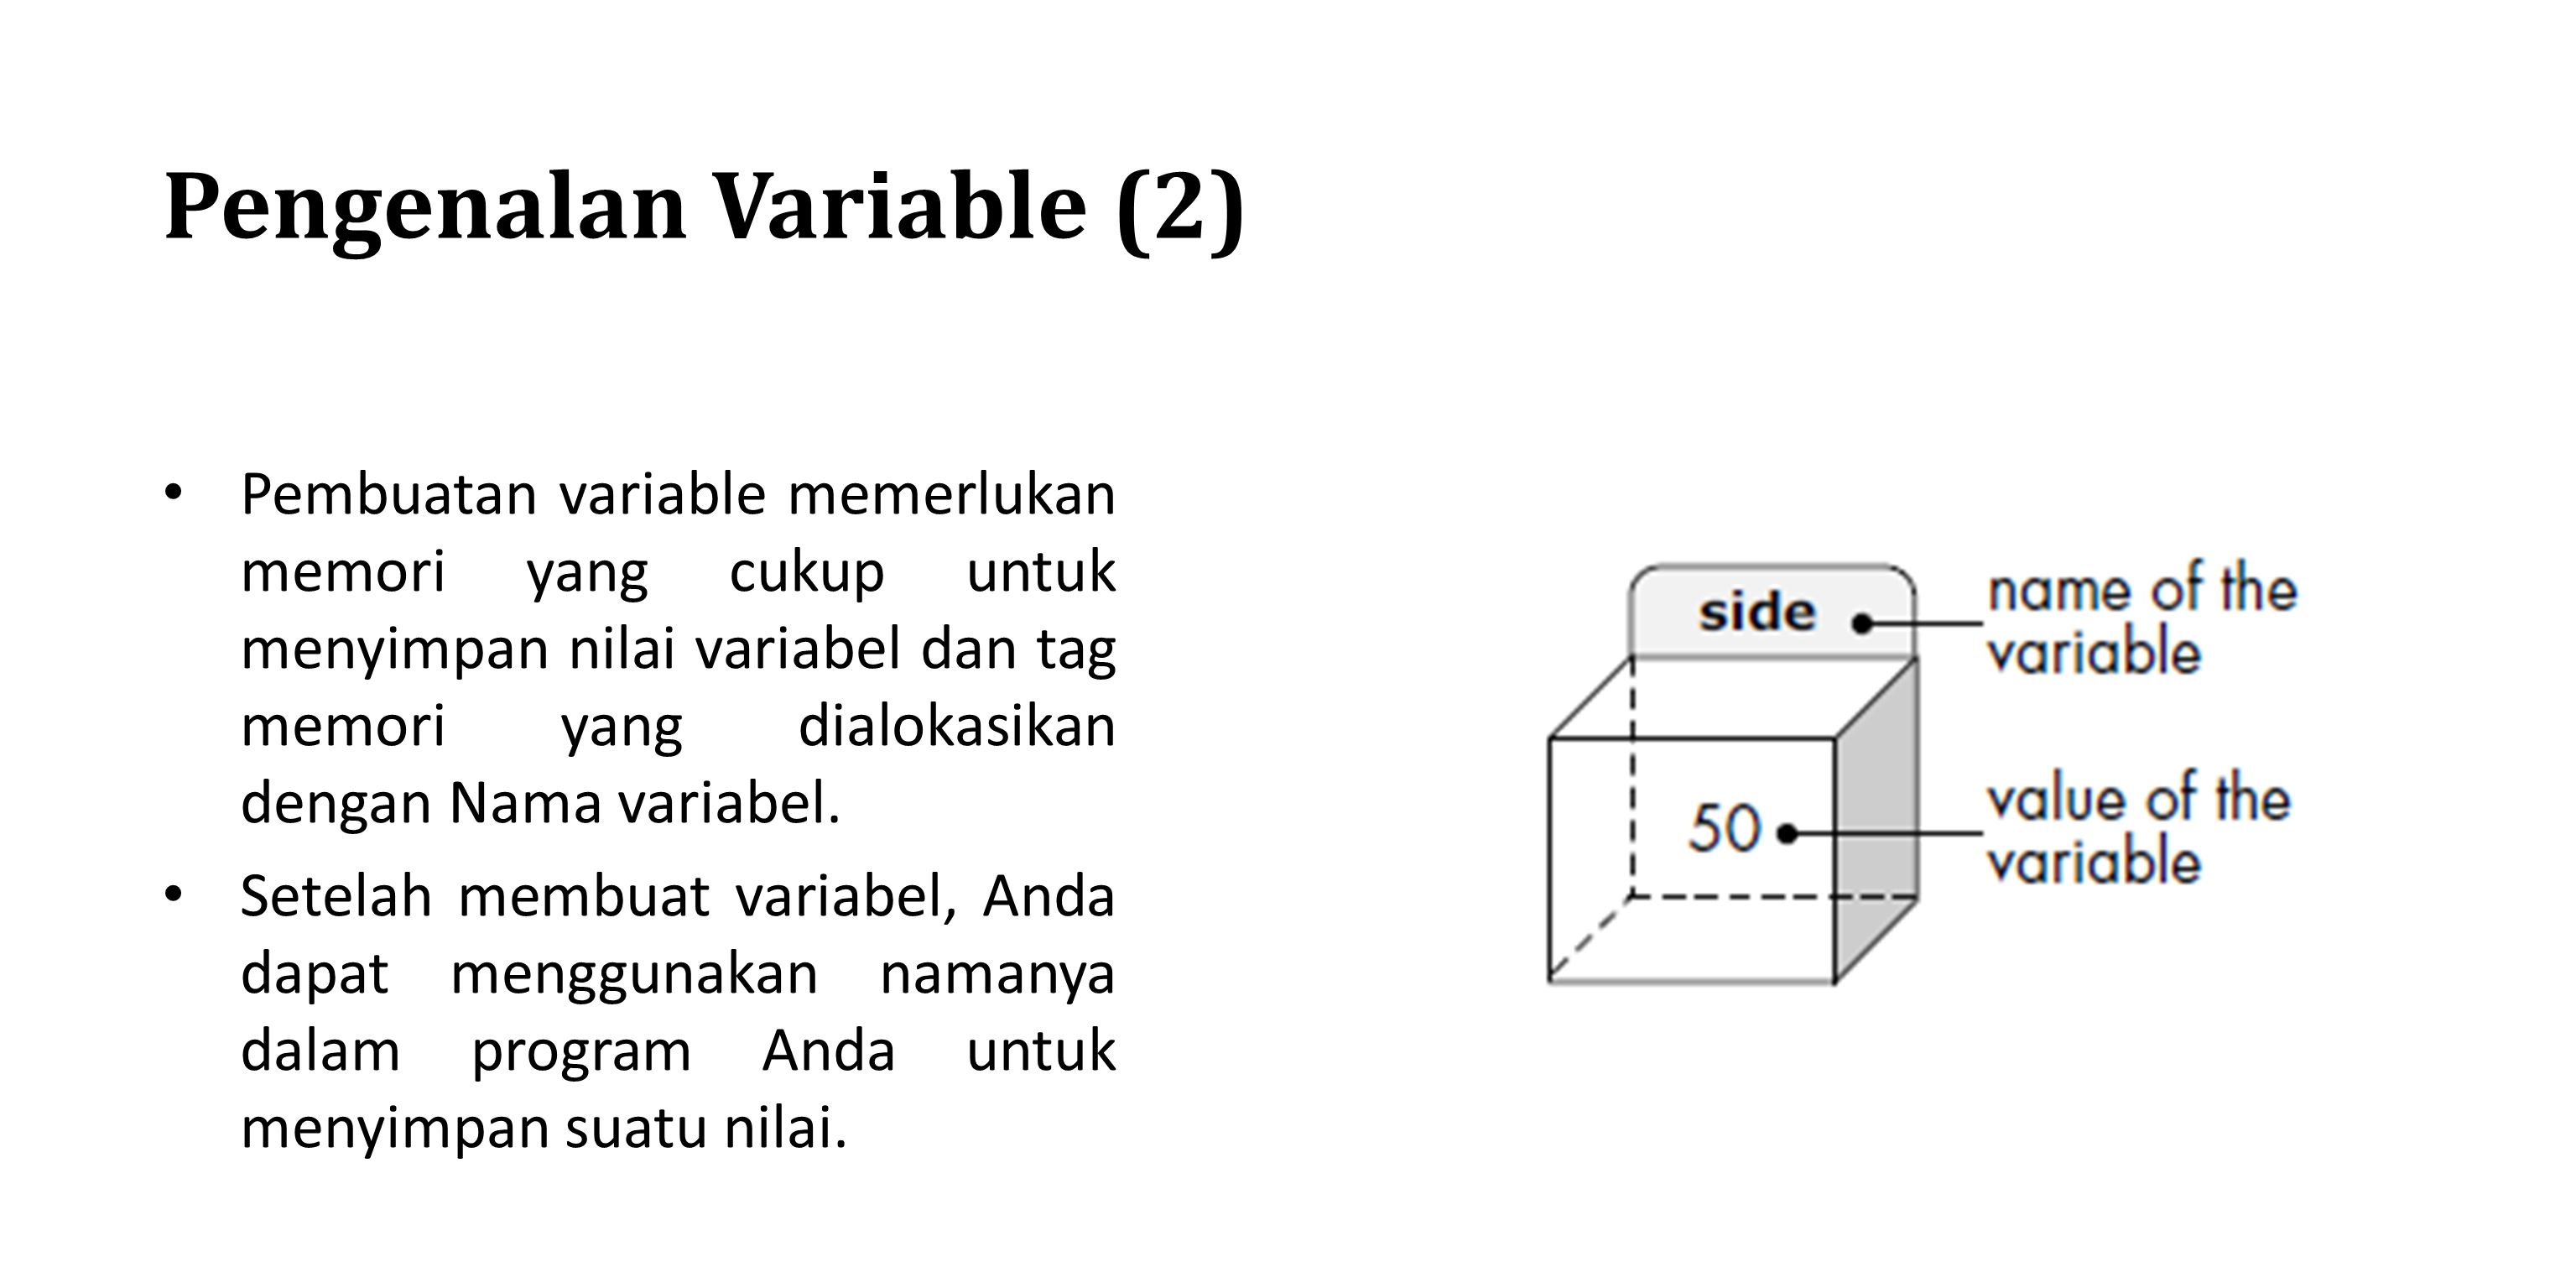 Pengenalan Variable (2)